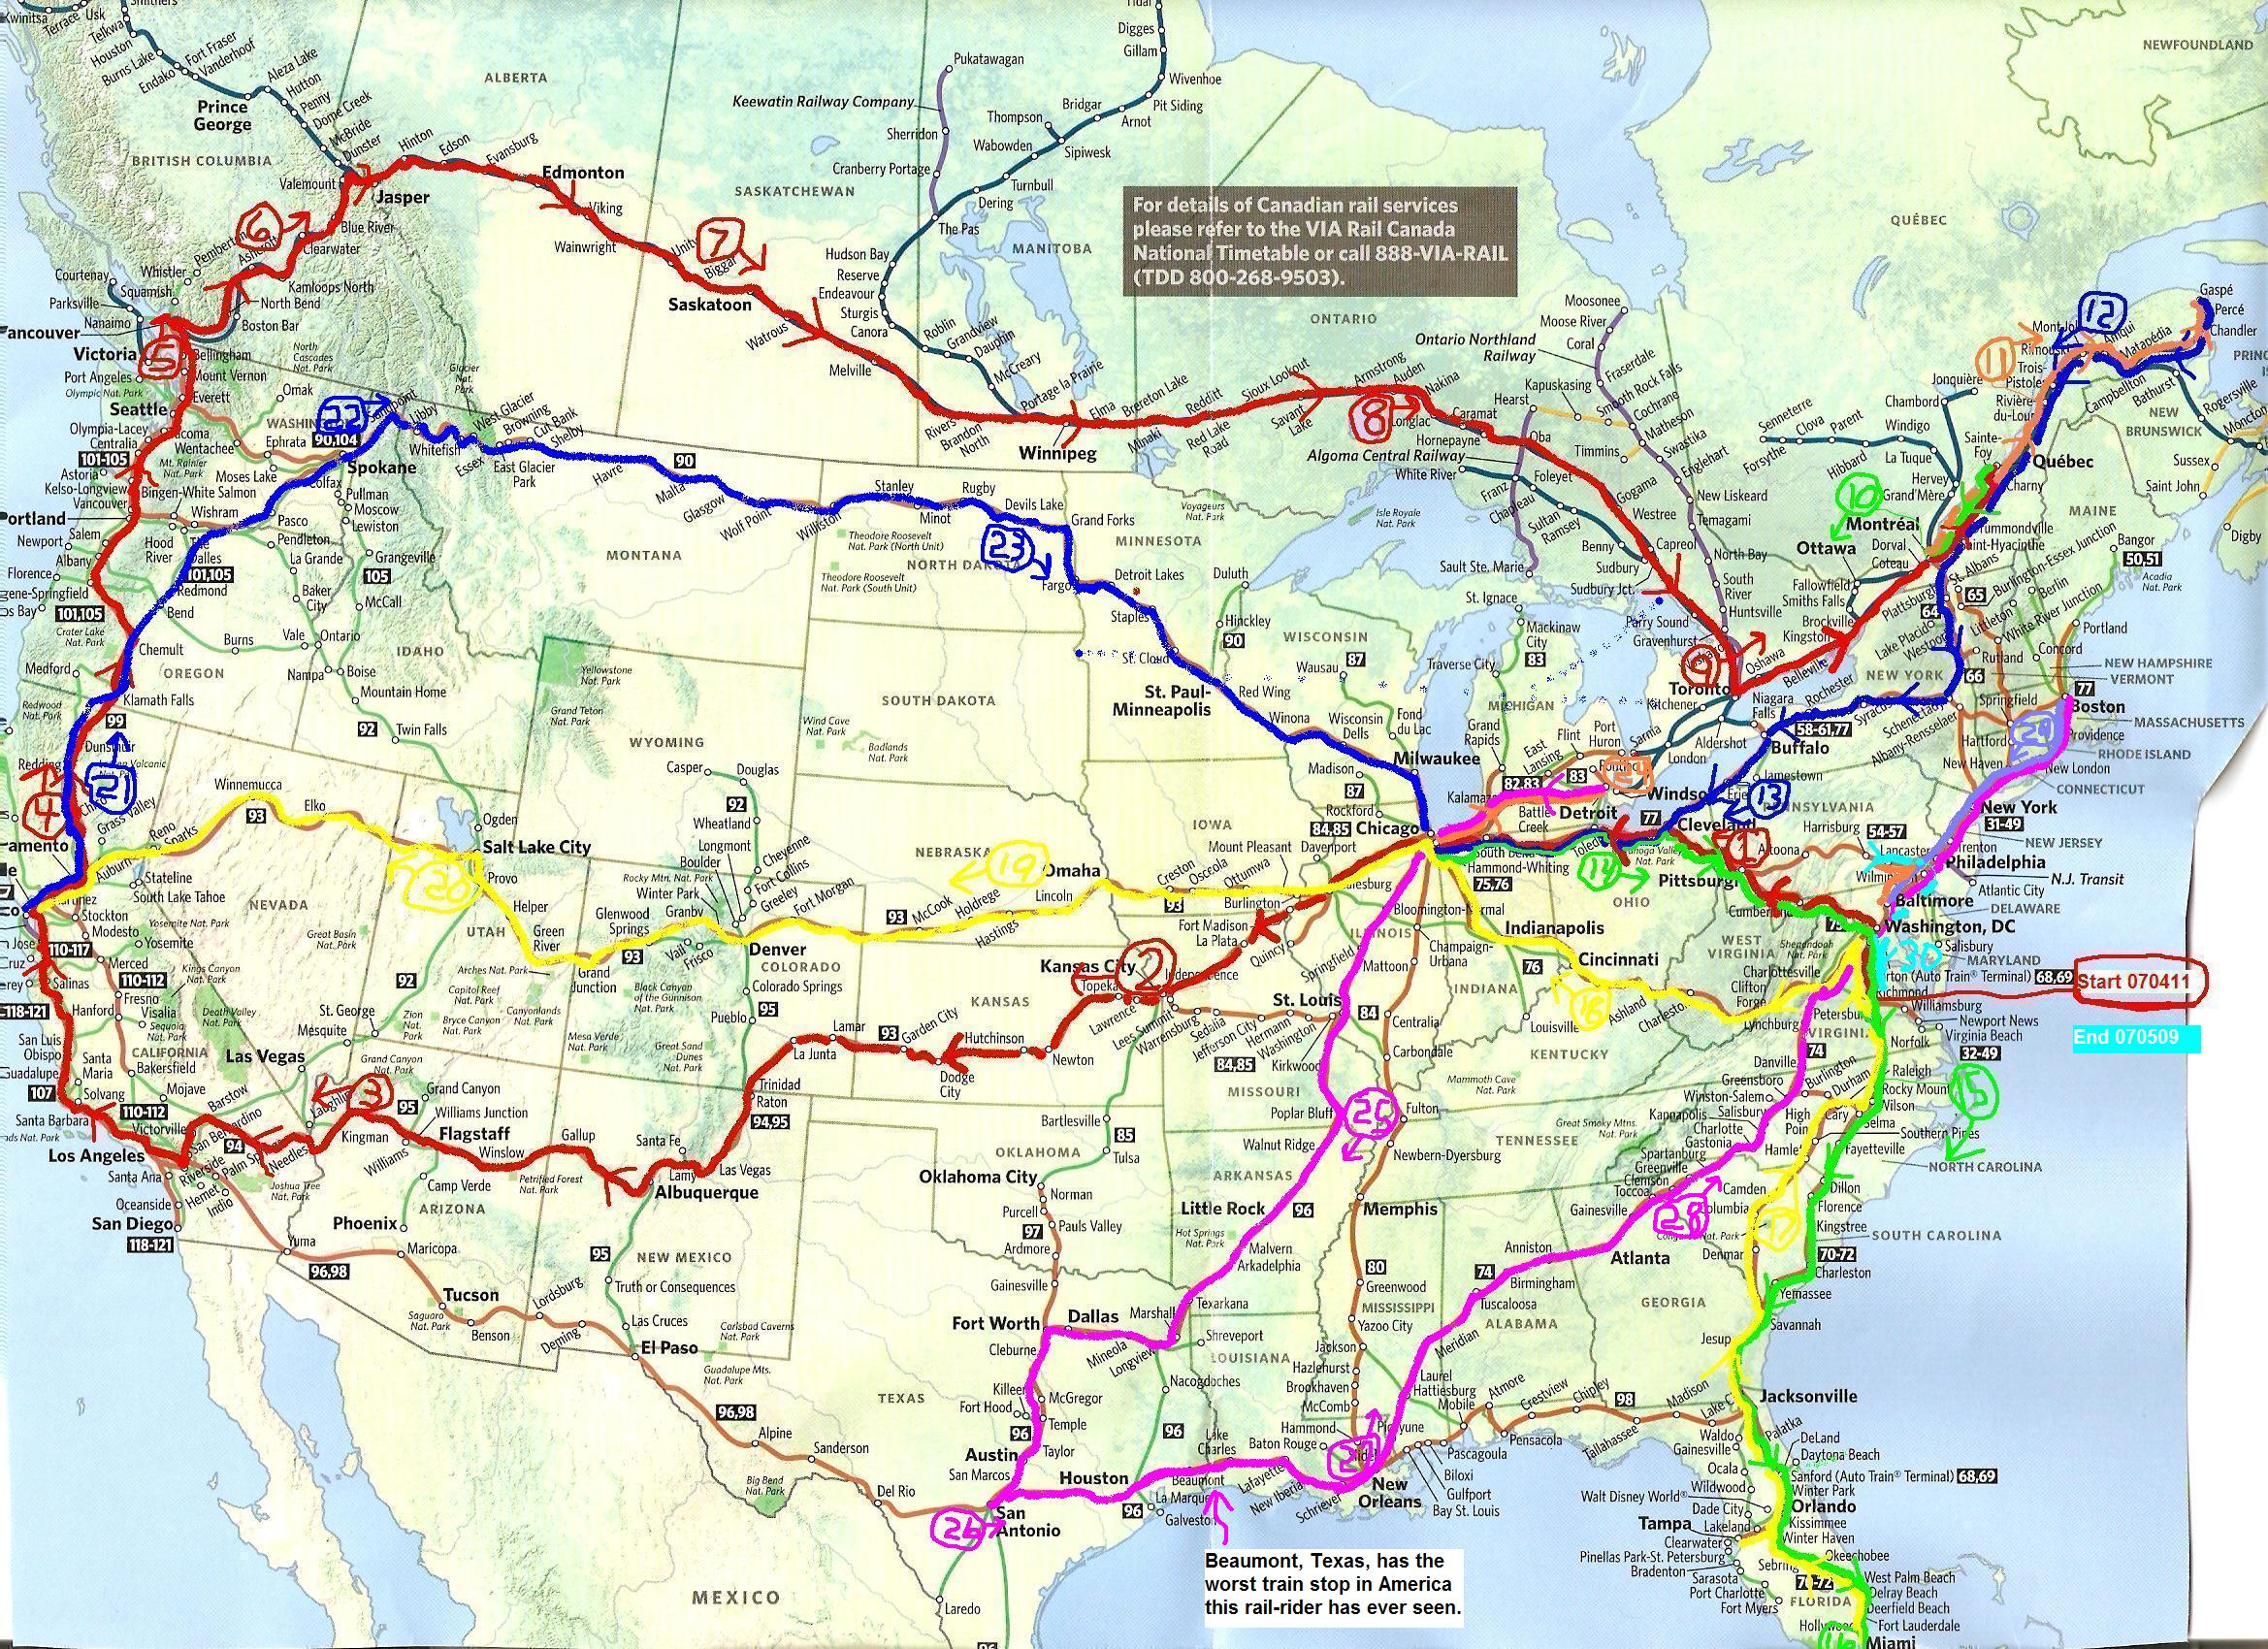 Intermodal Services   Rail Transport and Drayage   Transplace besides Airports In Map Of North American – parachinar info as well Oil train 'blast zone' mapped throughout North America   CTV News further North America Escorted Rail Tours   Holidays   Rail Discoveries additionally railroads   Natural Earth   shapefile download shp data also The North American Rail System   Download Scientific Diagram likewise Rail transportation in the United States   Wikipedia as well BNSF Railway   Wikipedia besides Canada Railway Map Elegant Map north America Canada World Map Free furthermore Canadian National Railway  CN    The Canadian Encyclopedia further 7 Naustrial Sites Rail Maps of theusFreight Rail IMap of Cl T further Interactive Maps of U S  Freight Railroads   ACW Railway  pany moreover North American Intermodal Rail Map   Streaine ERP   CRM   TMS likewise  moreover  further METRO Blue Line. on north america rail map